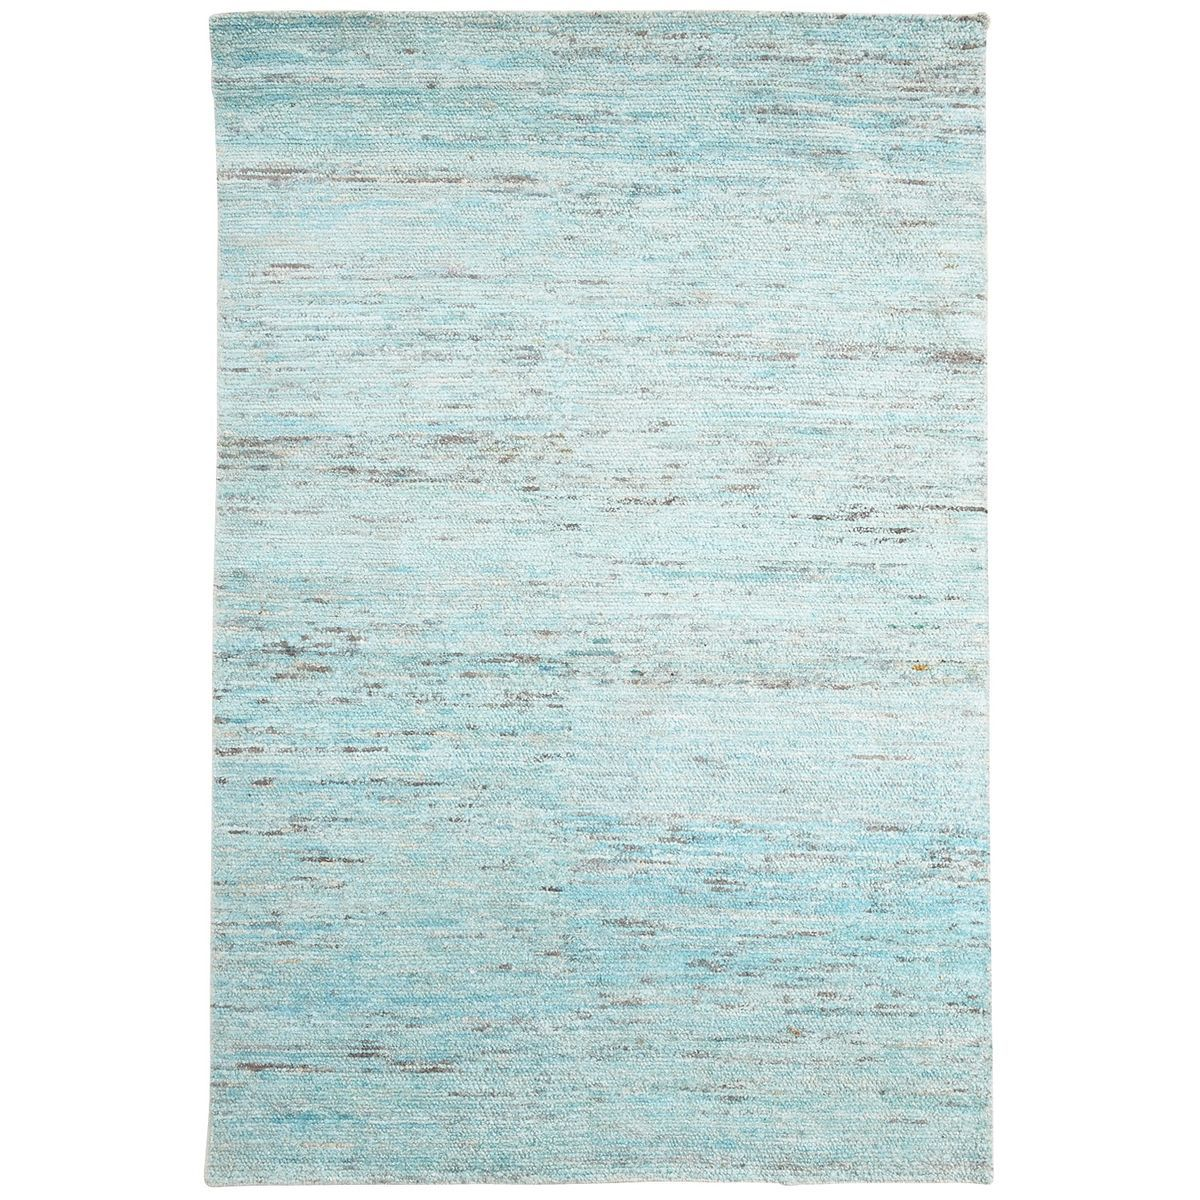 pier 1 living room rugs%0A Handwoven from reclaimed sari fabrics  our rug features the gentle glimmer  of metallic thread